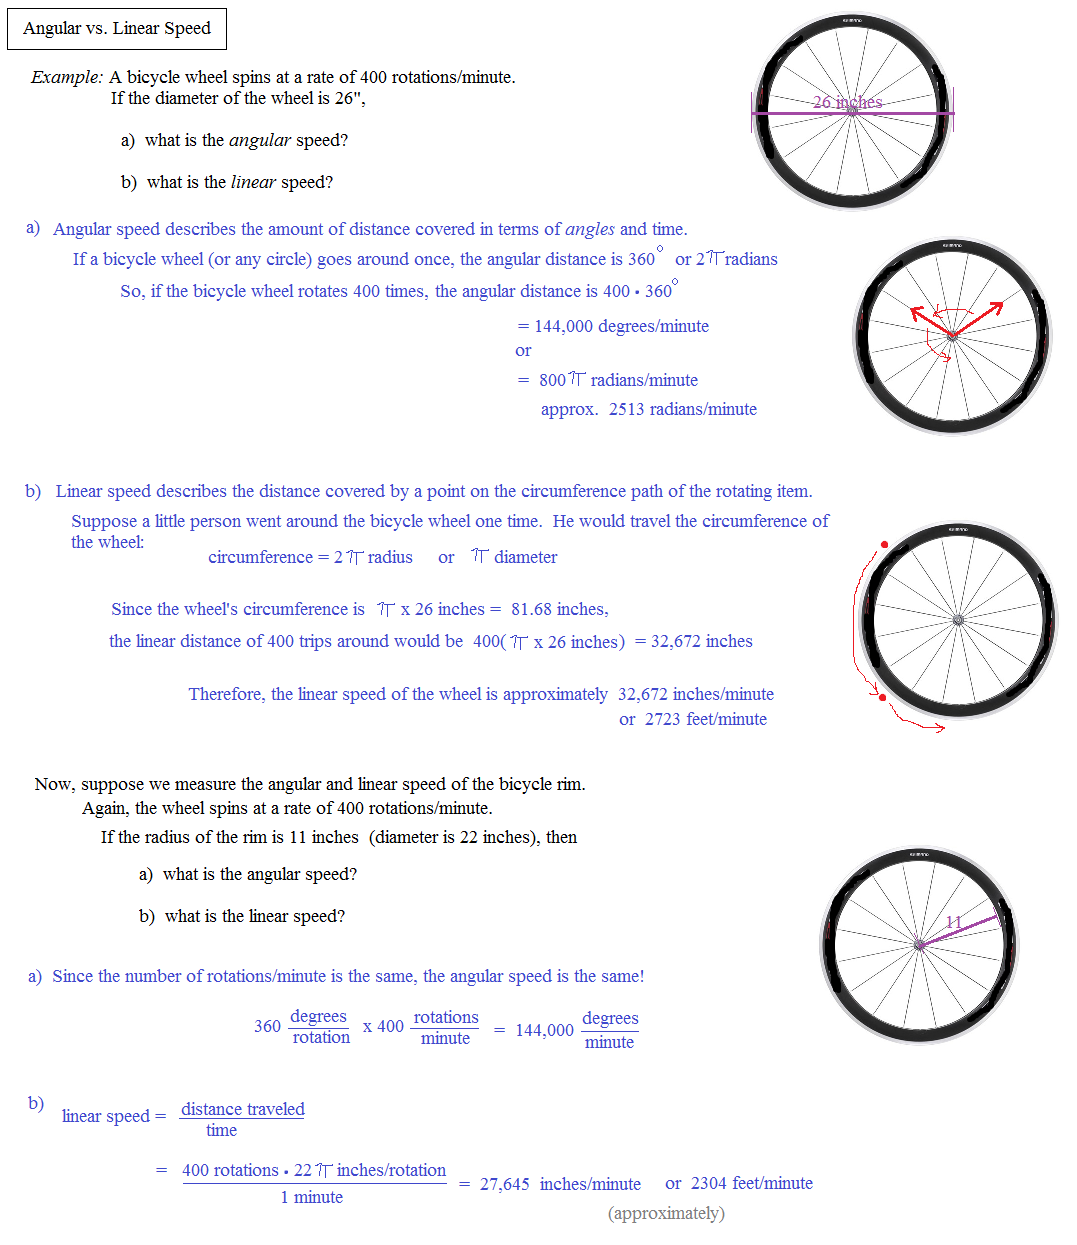 Math Plane Angle Measurement – Angular and Linear Velocity Worksheet